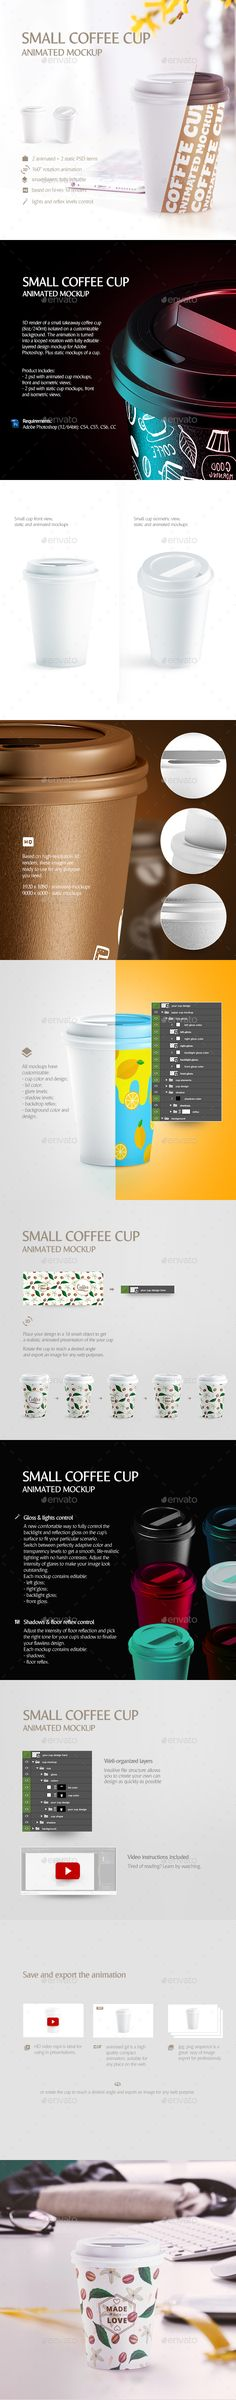 Small Coffee Cup Animated #Mockup - Food and Drink #Packaging